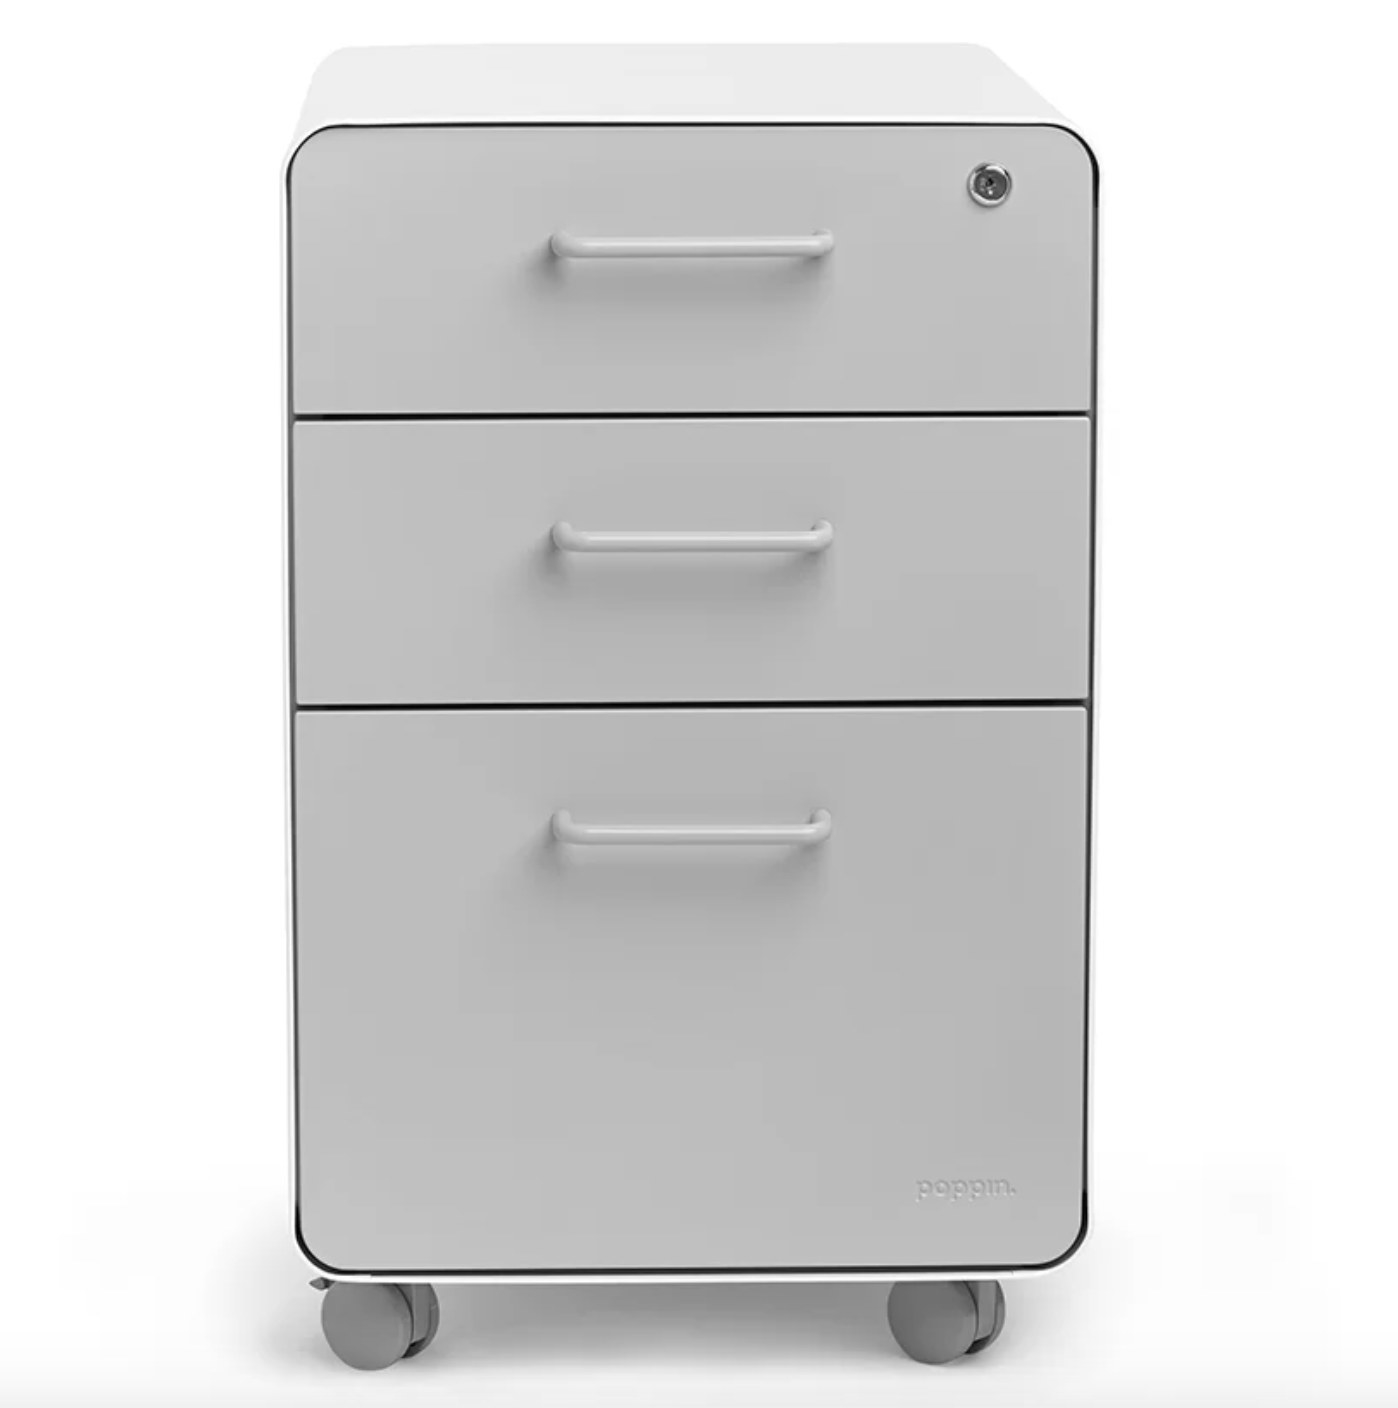 The three drawer filing cabinet in light gray